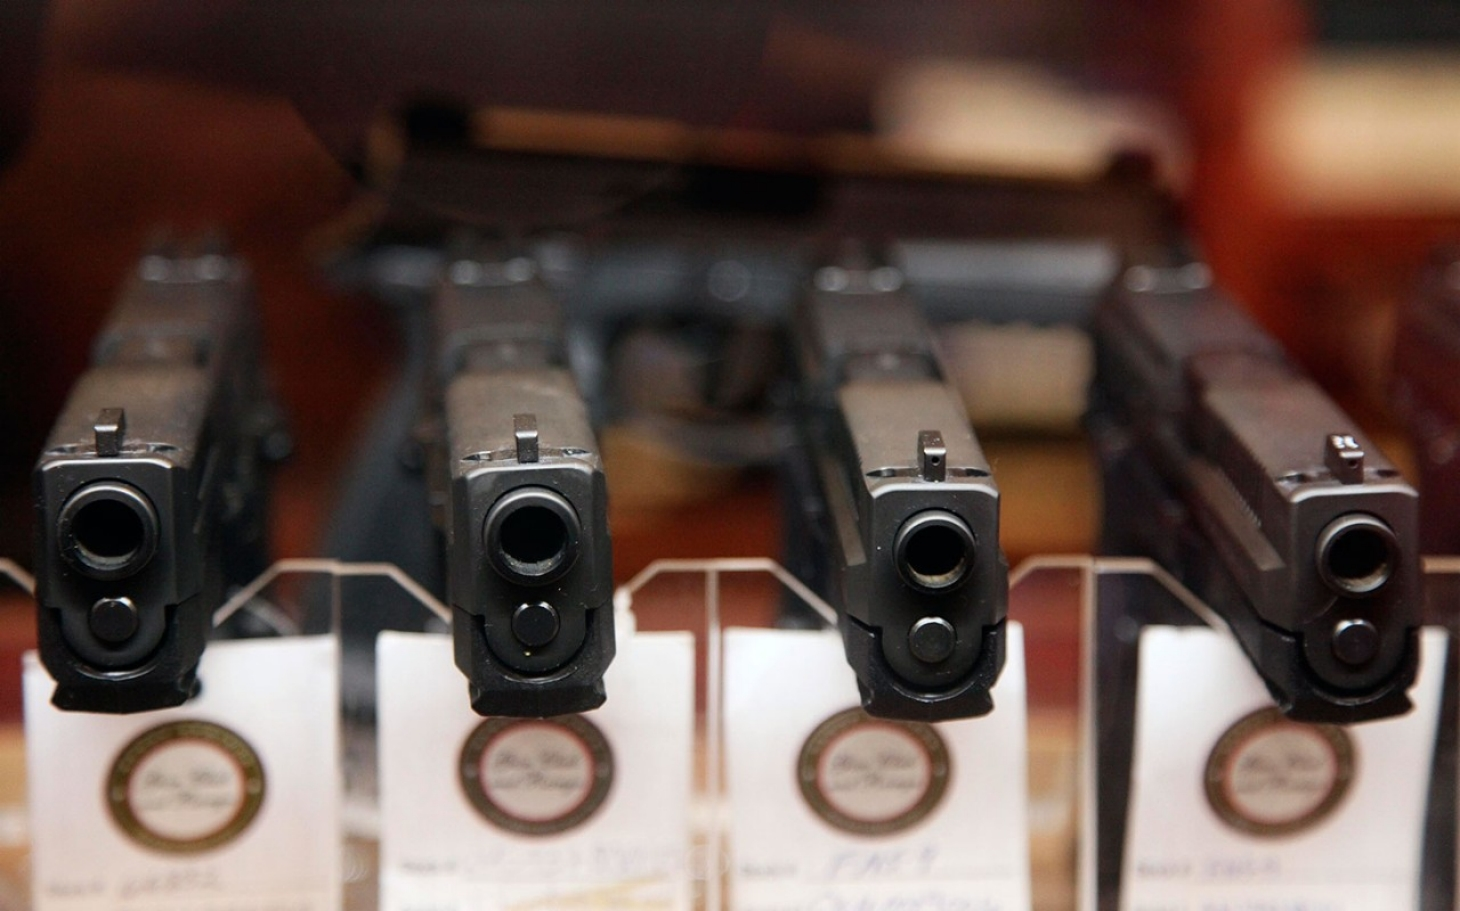 What restrictions, if any, should be put on gun ownership?